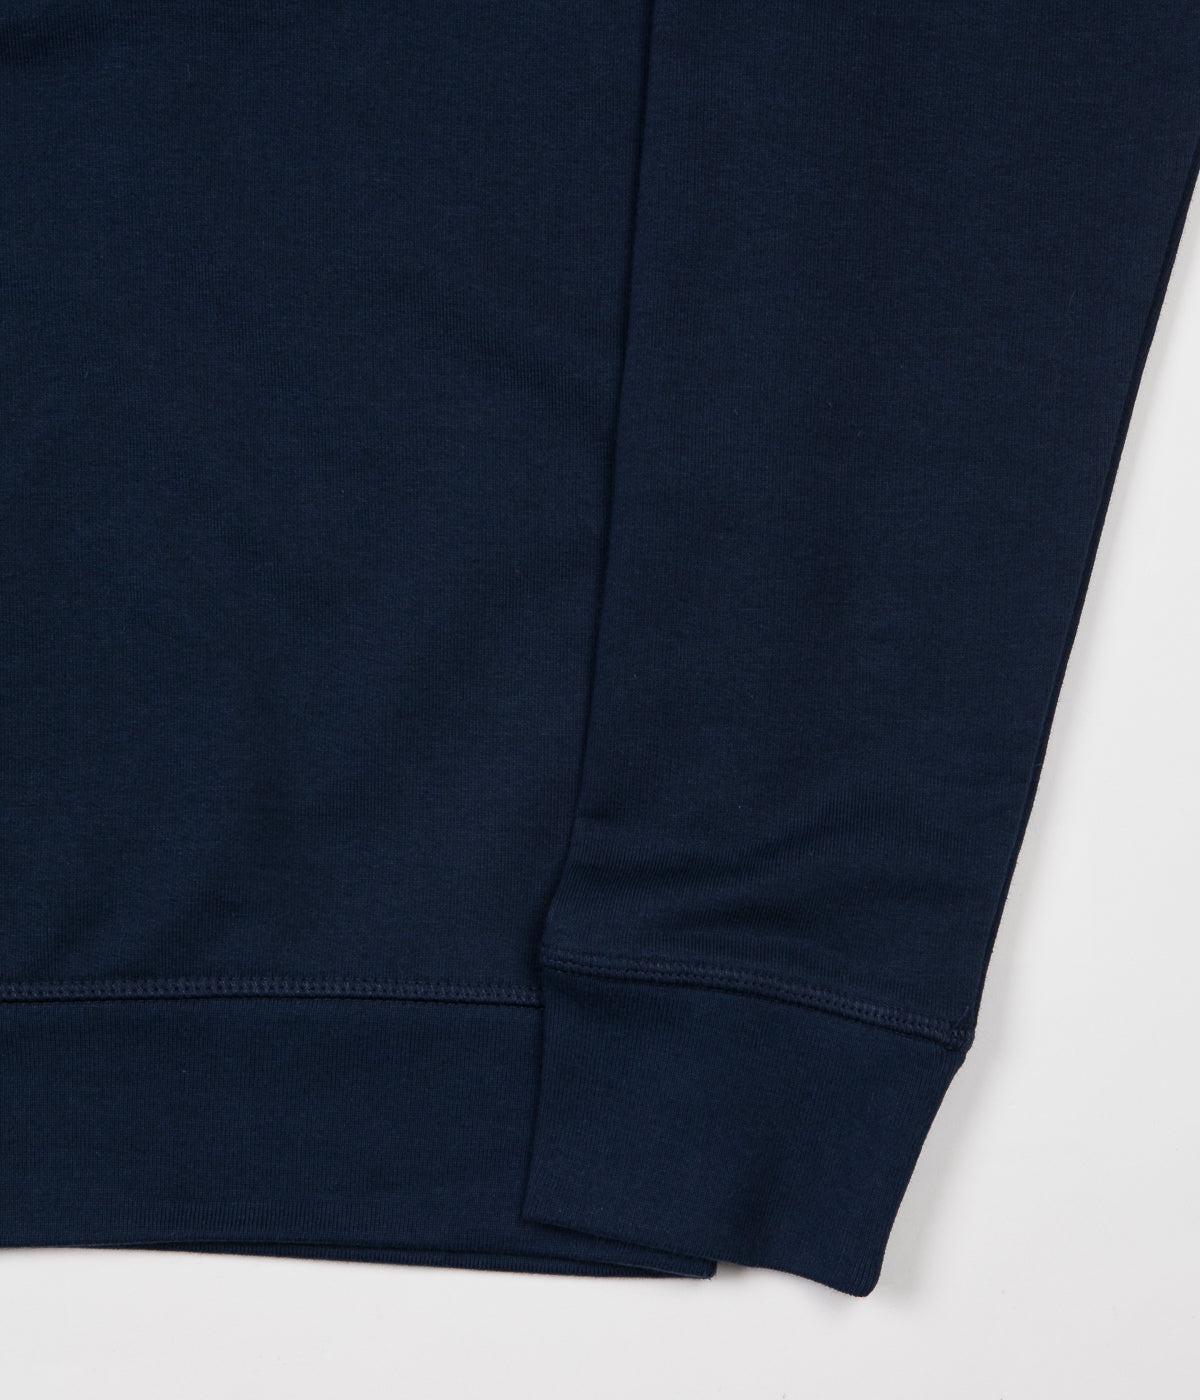 Parlez High Crewneck Sweatshirt - Navy